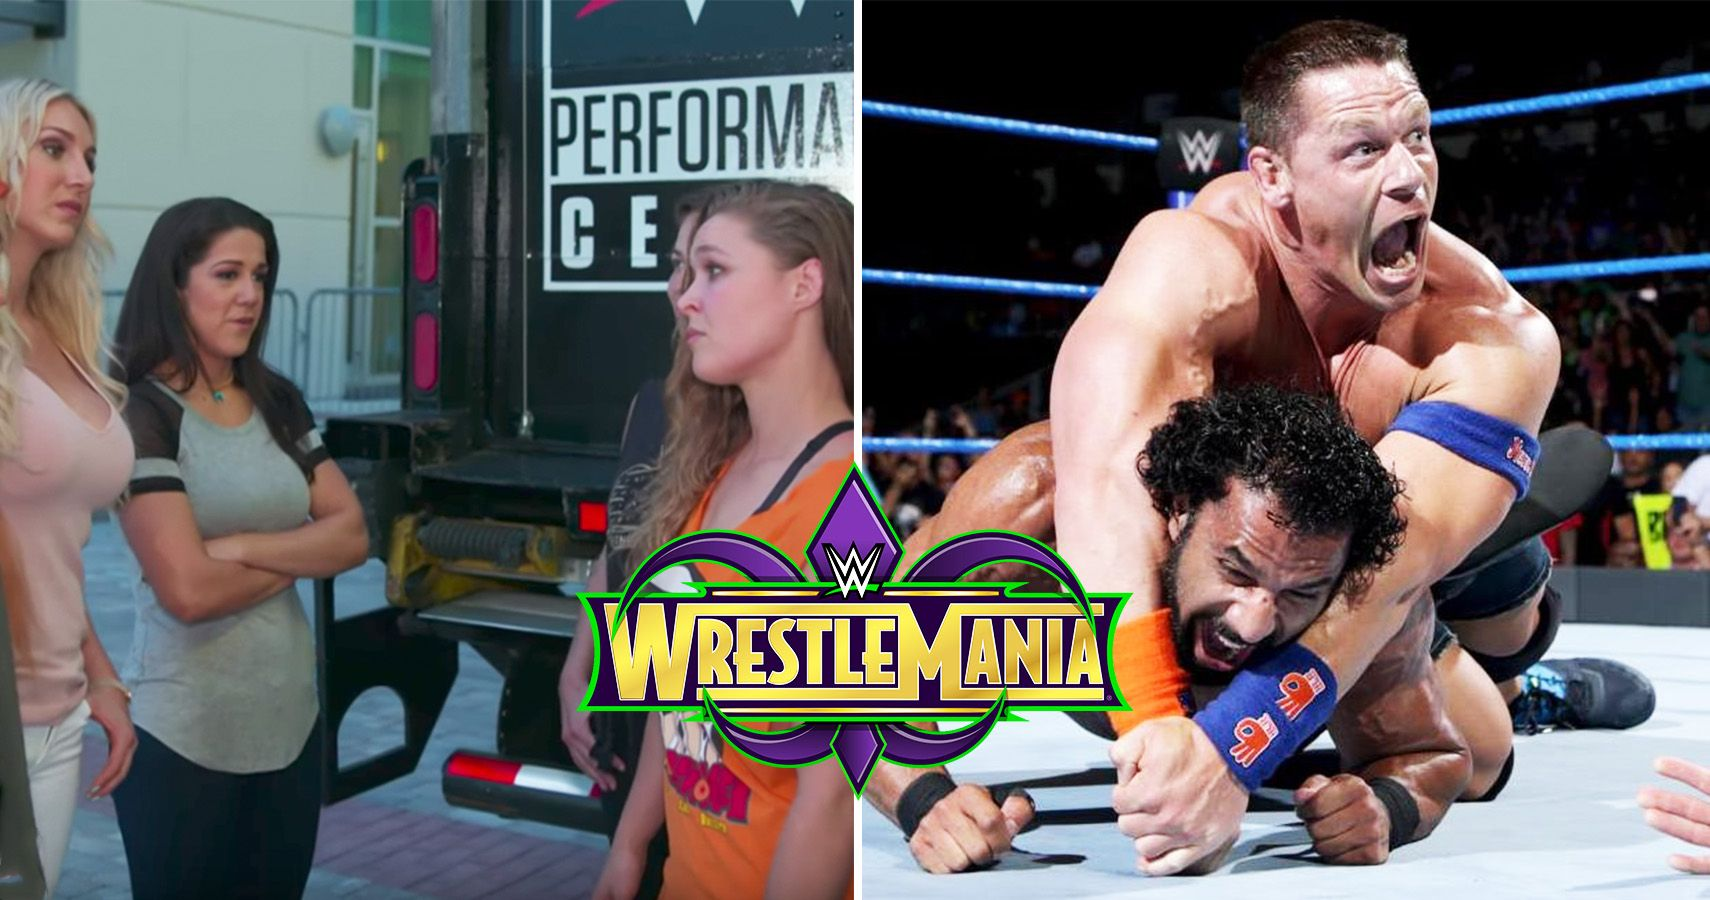 WrestleMania 34 Rumors Confirmed To Be True And We Hope Arent